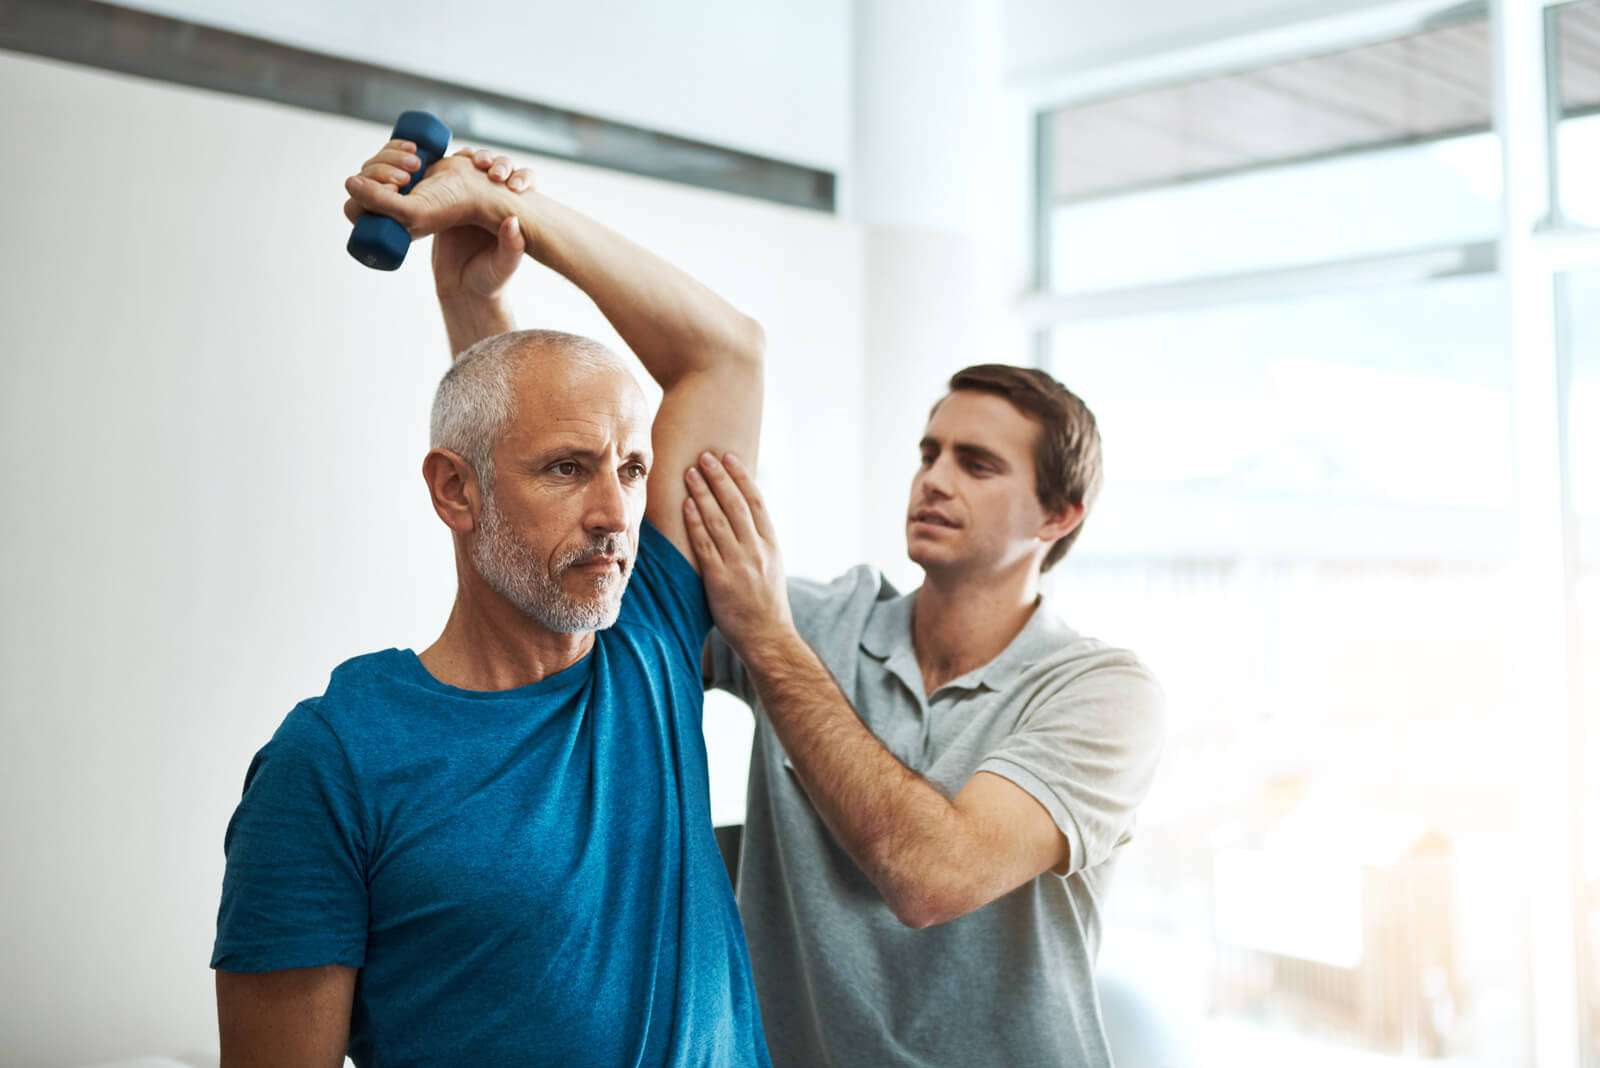 A man doing arm exercises with a physiotherapist